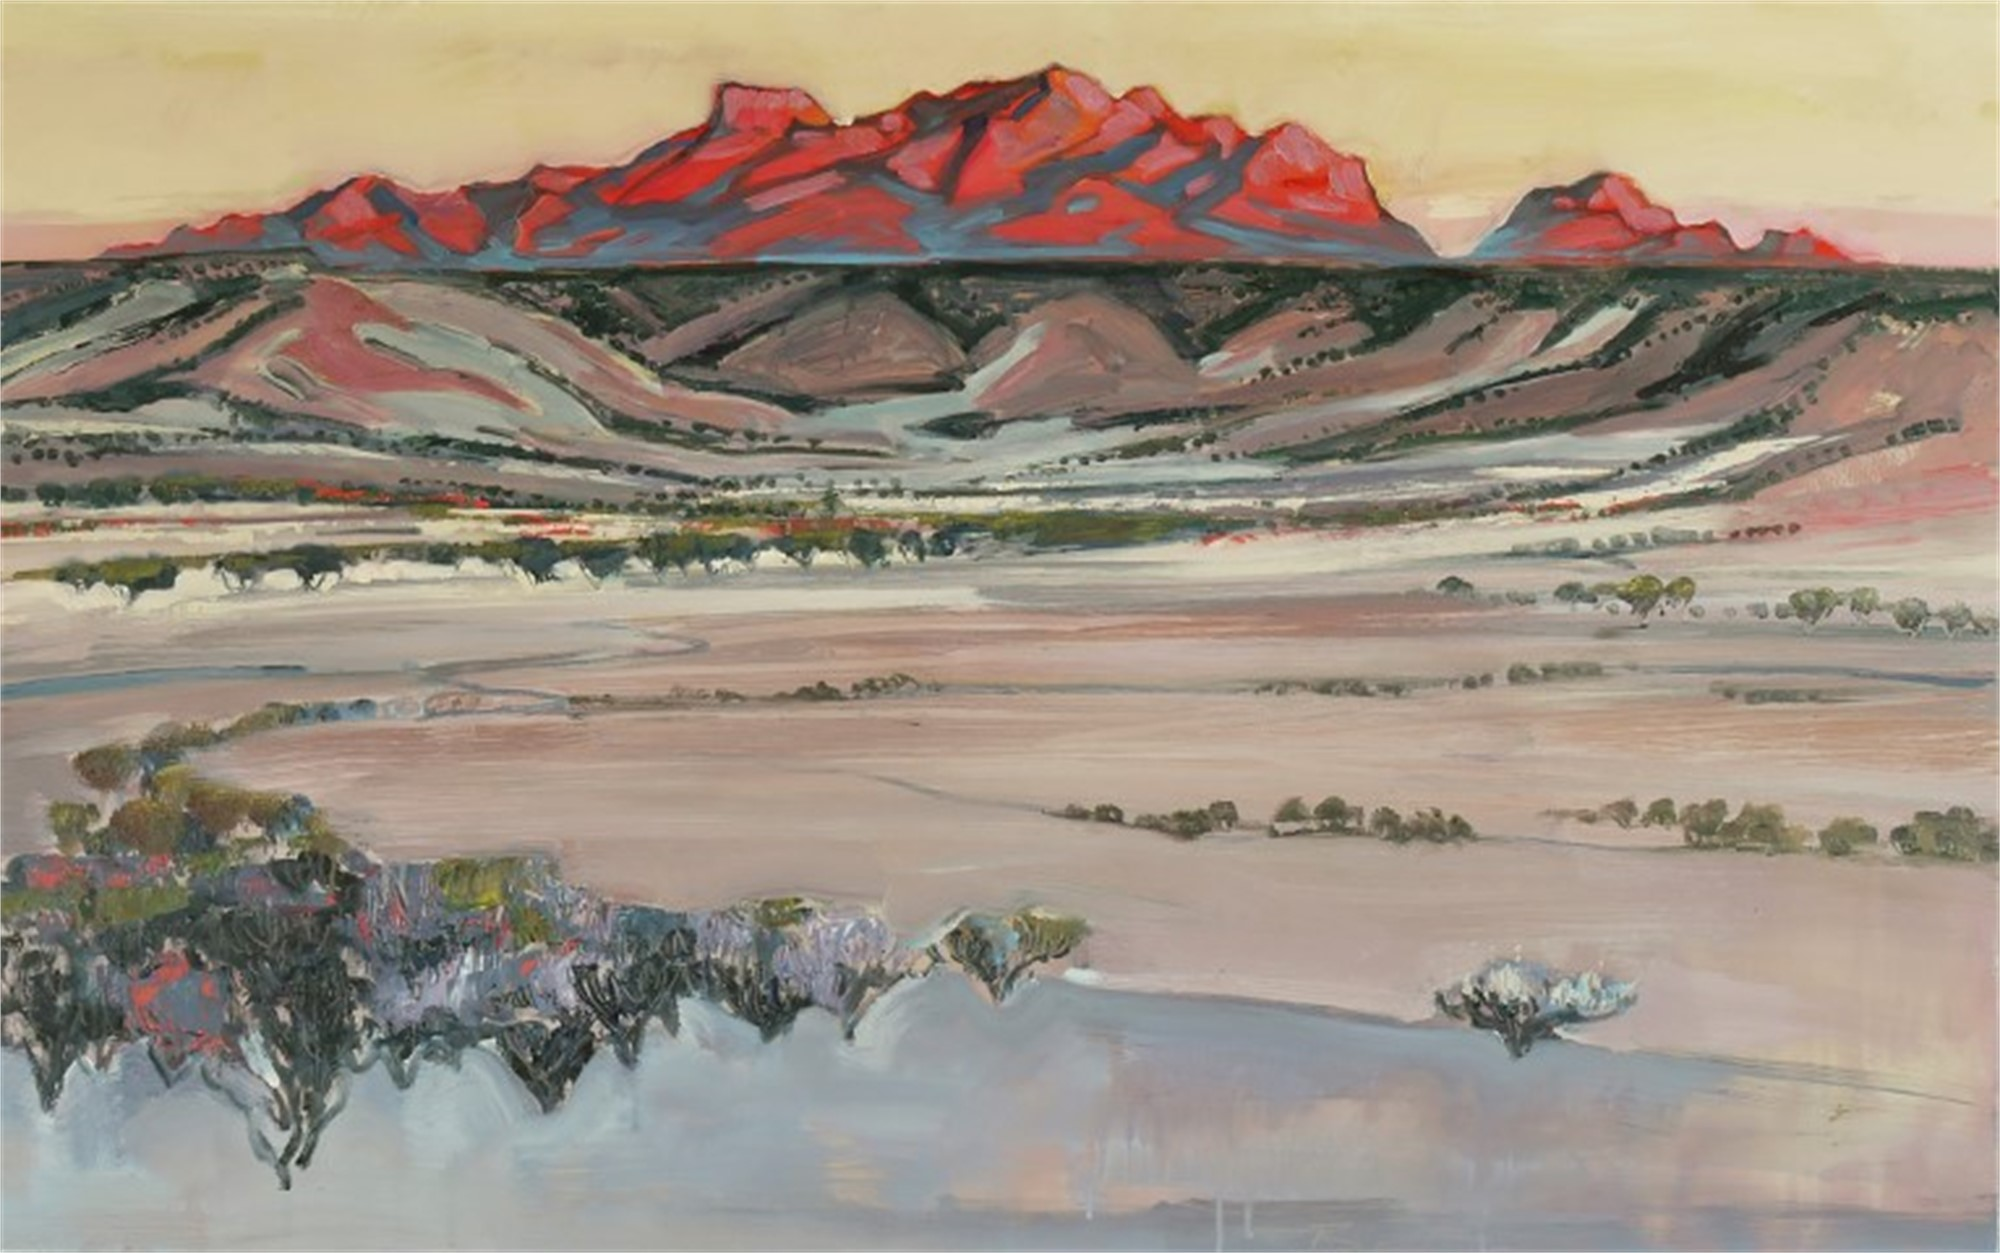 Chisos Mountains From a Distance by Mary Baxter